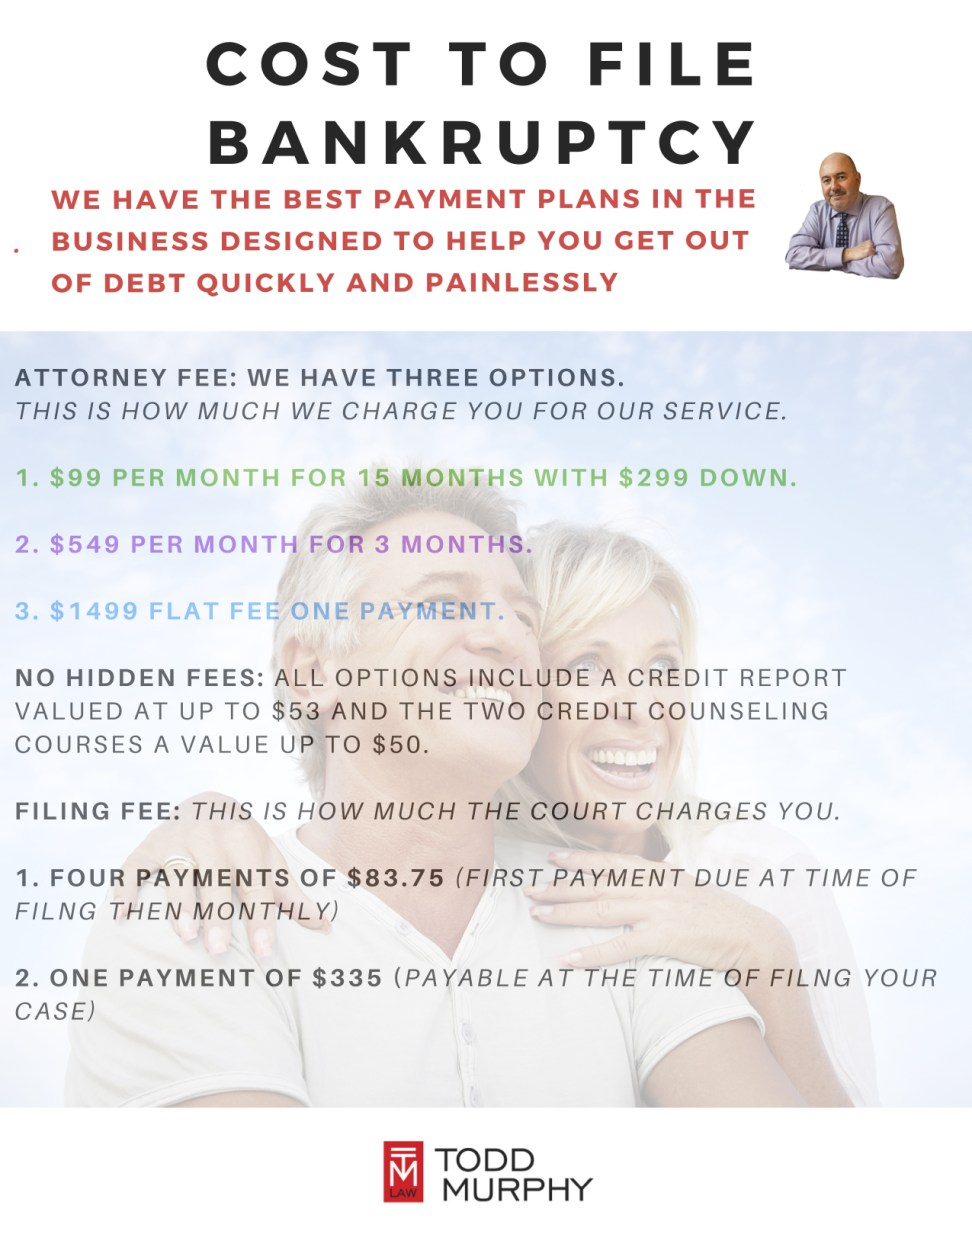 Cost-to-File Bankruptcy